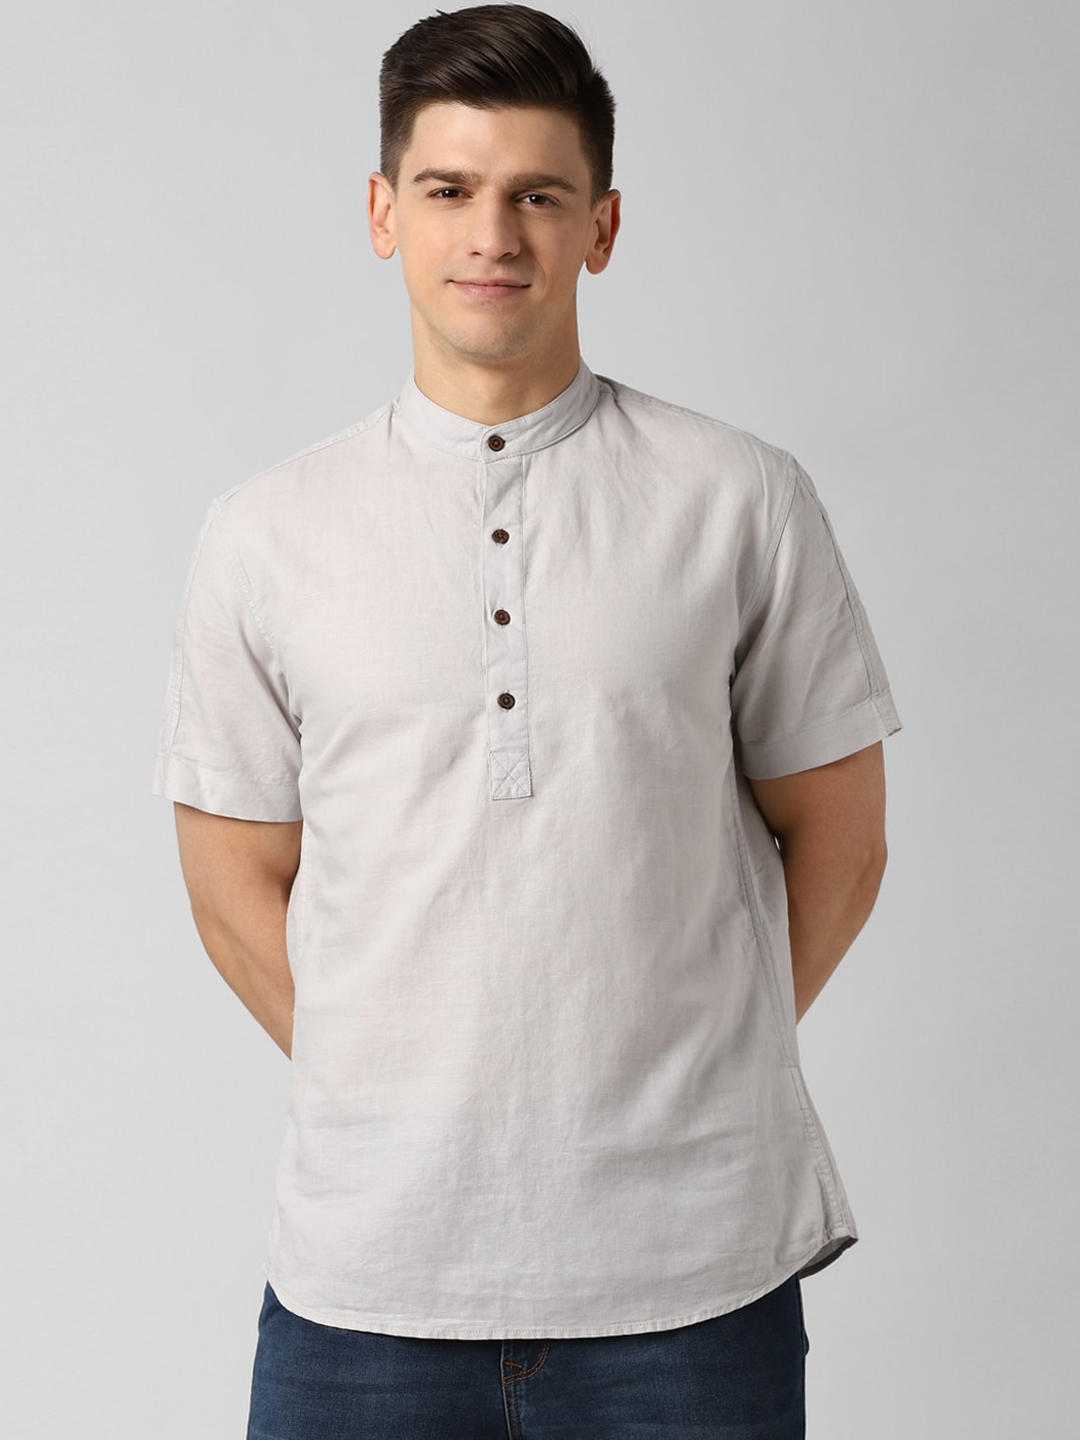 Peter England Casuals Men Grey Slim Fit Solid Casual Shirt